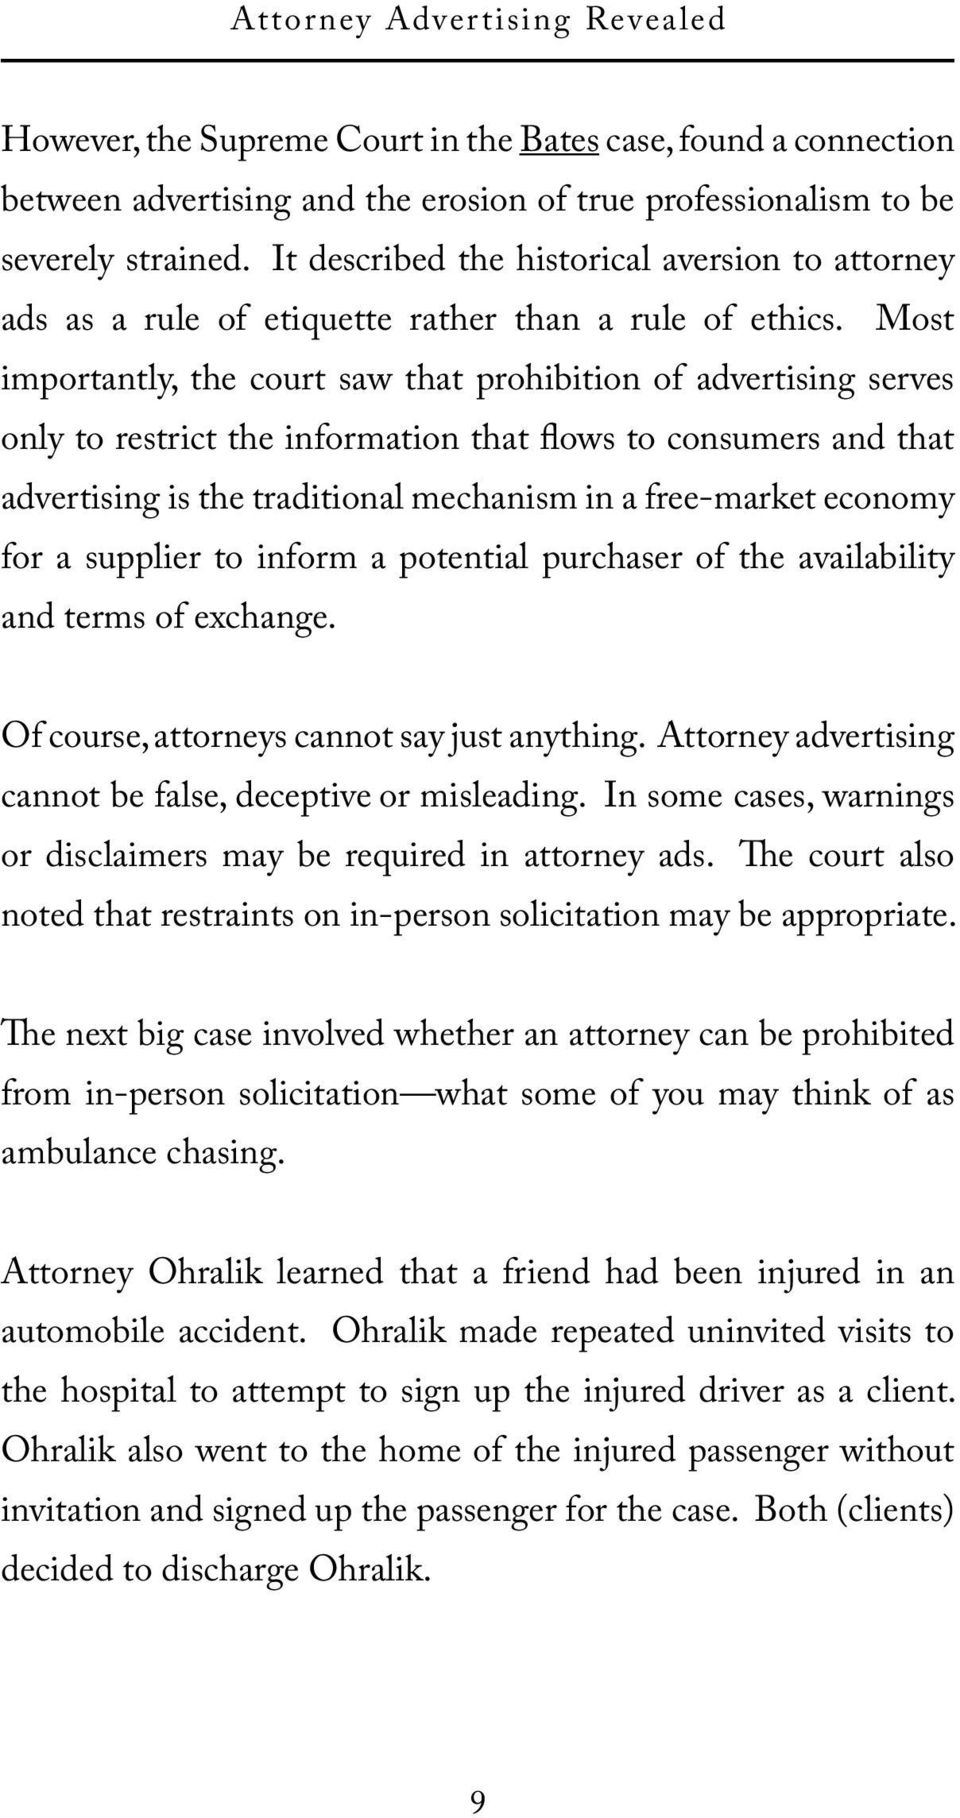 Most importantly, the court saw that prohibition of advertising serves only to restrict the information that flows to consumers and that advertising is the traditional mechanism in a free-market